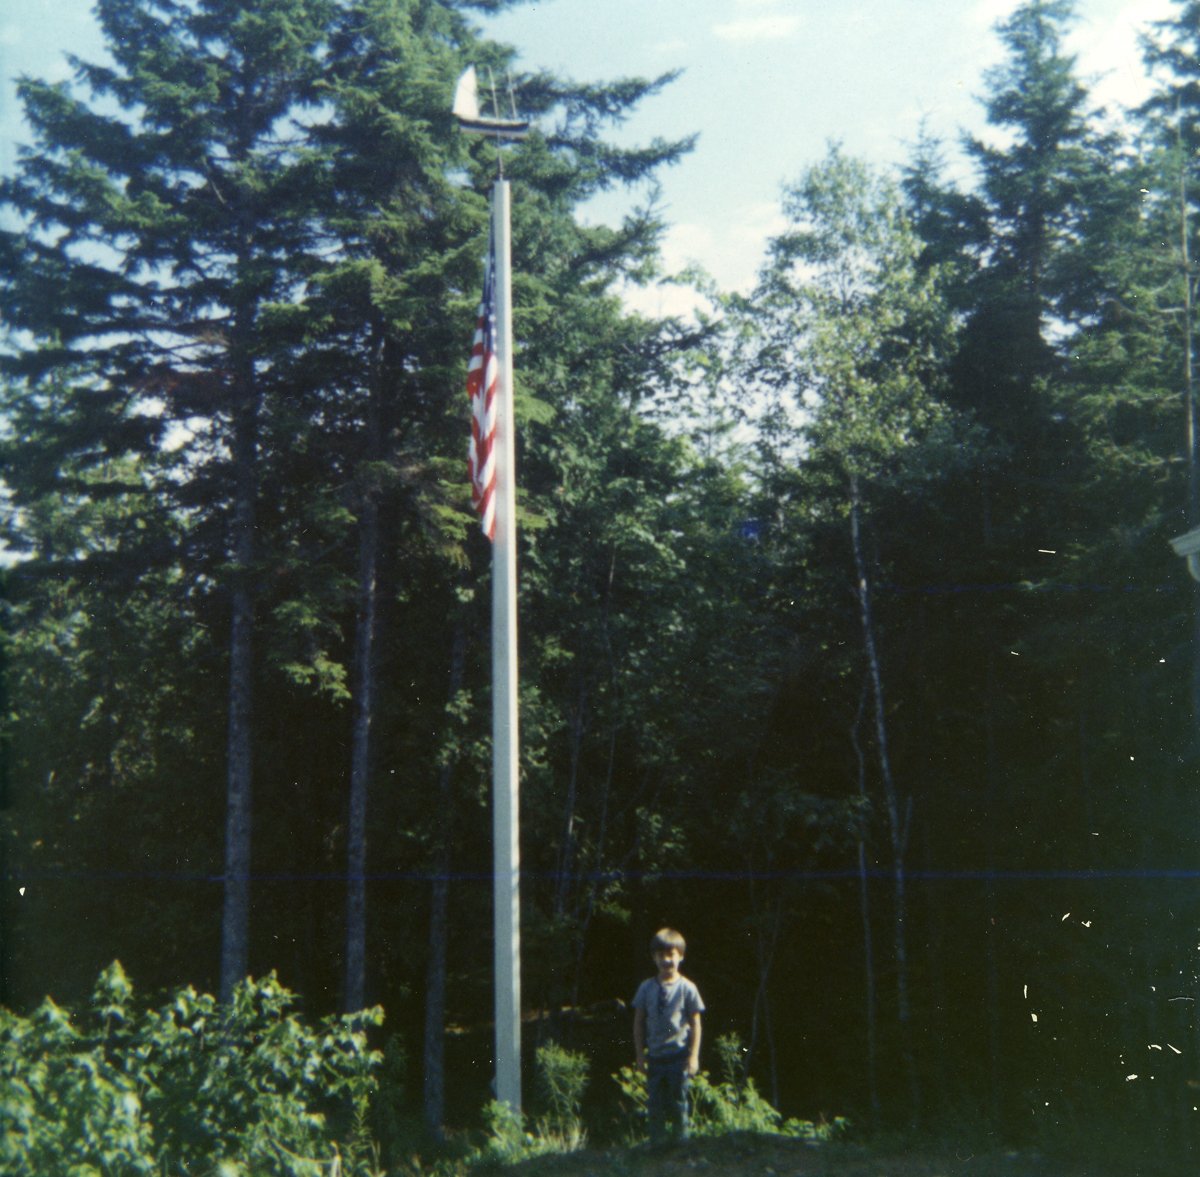 John Caston and the Flagpole Topped with Byron Lewis Robinson's Ship Model